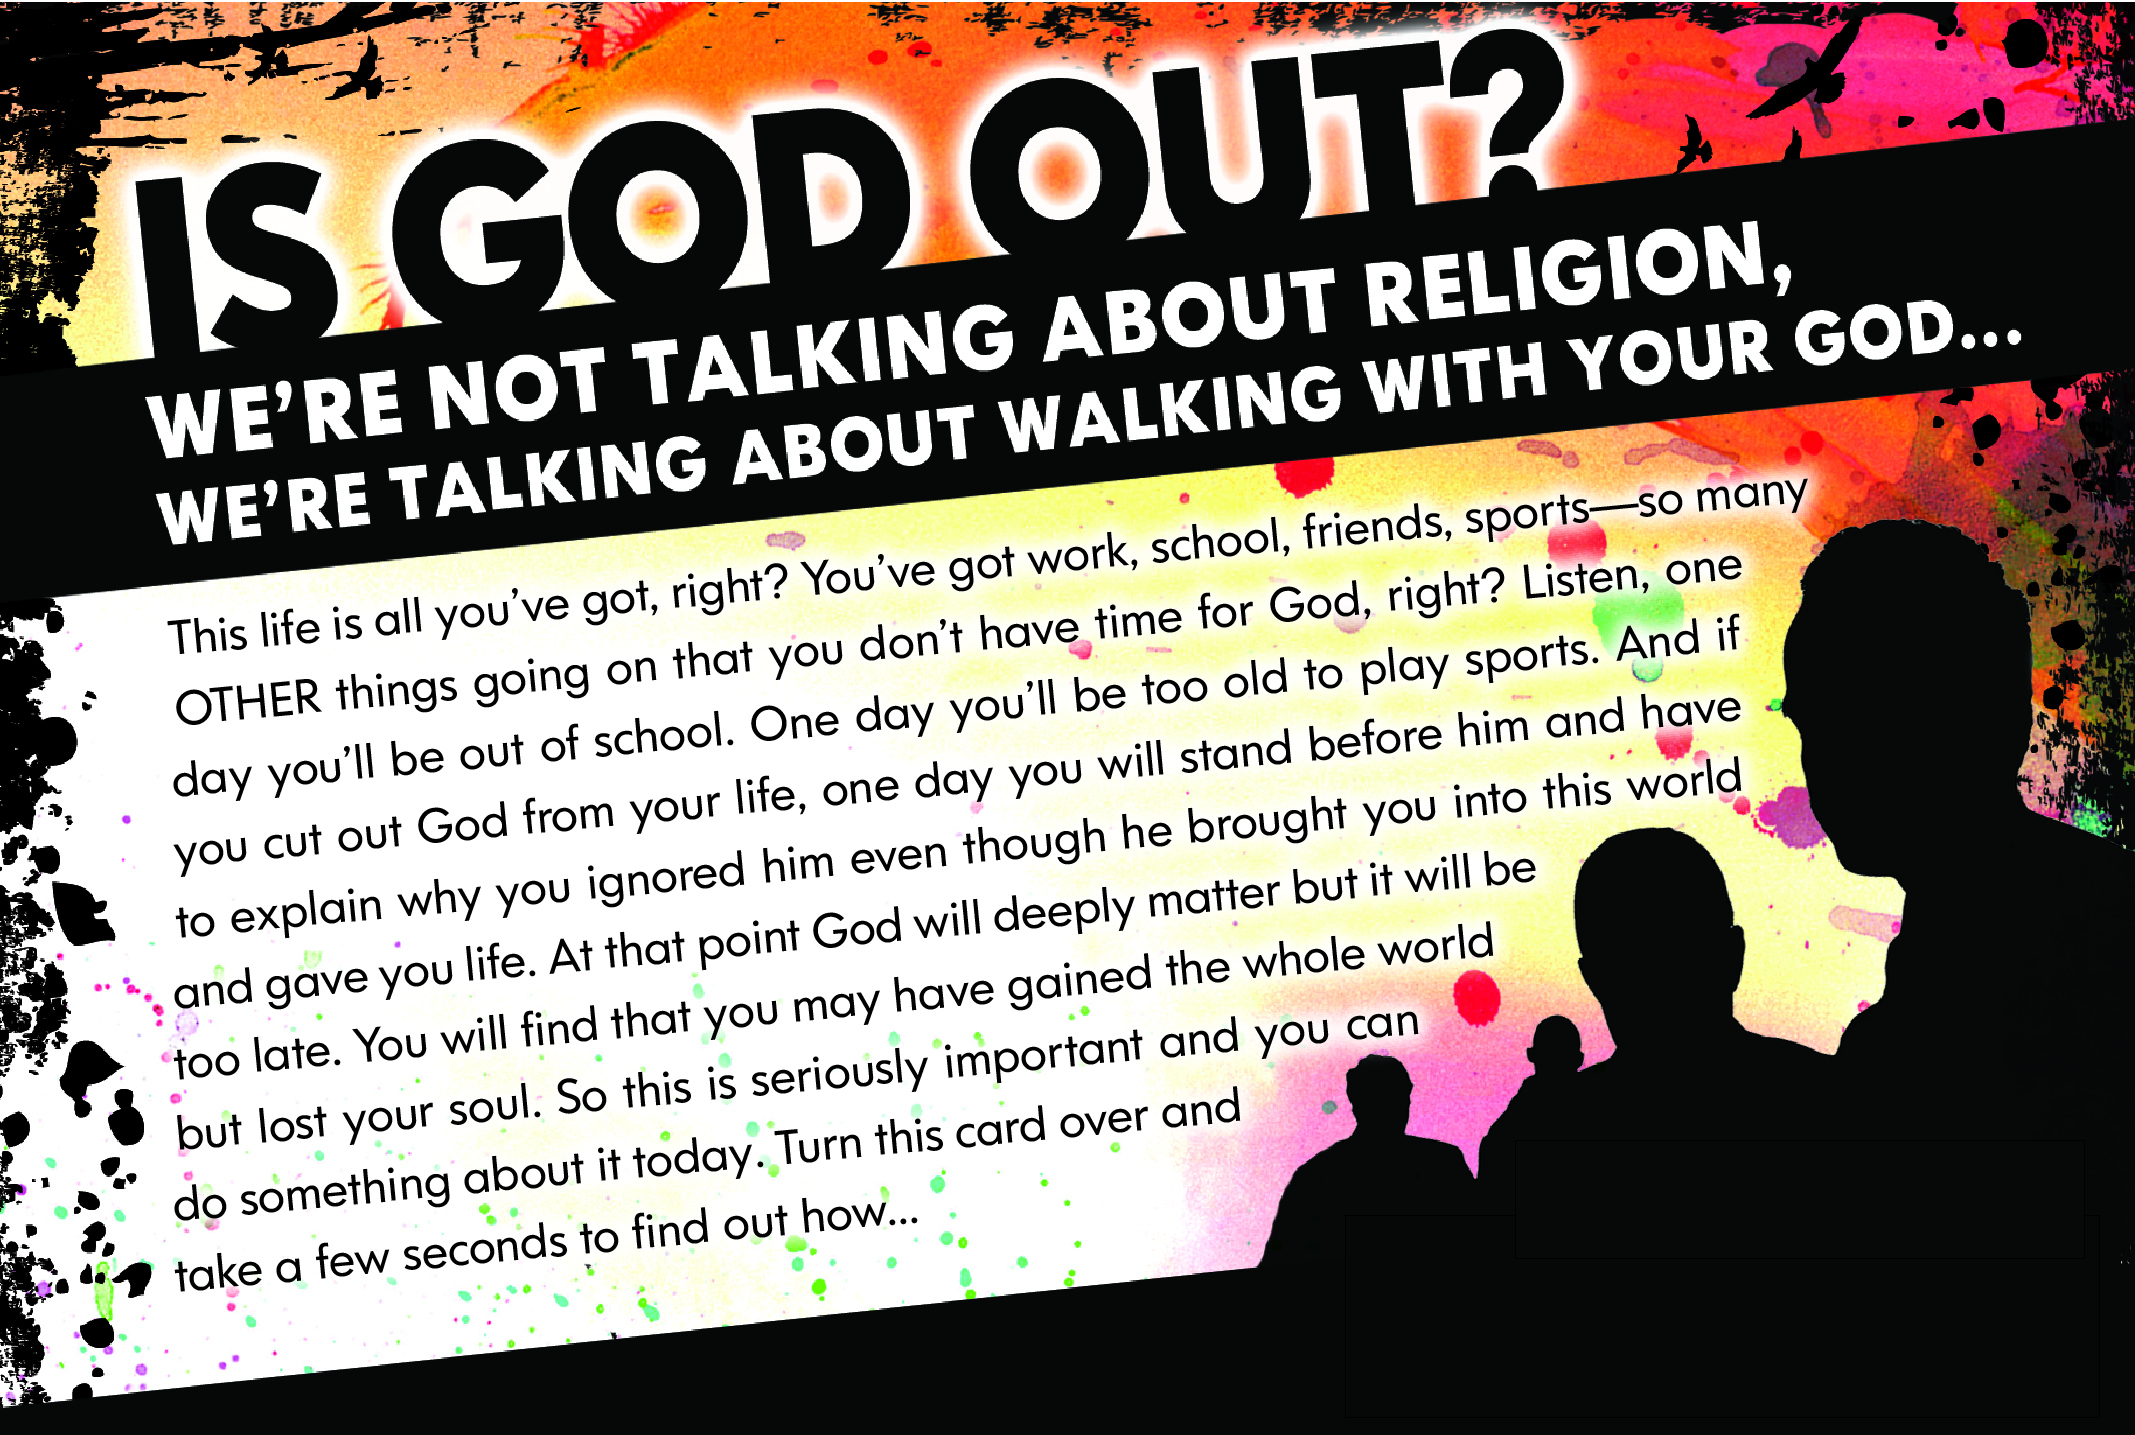 Tracts & Publications (Media & Resources) - Free Printable Tracts For Evangelism